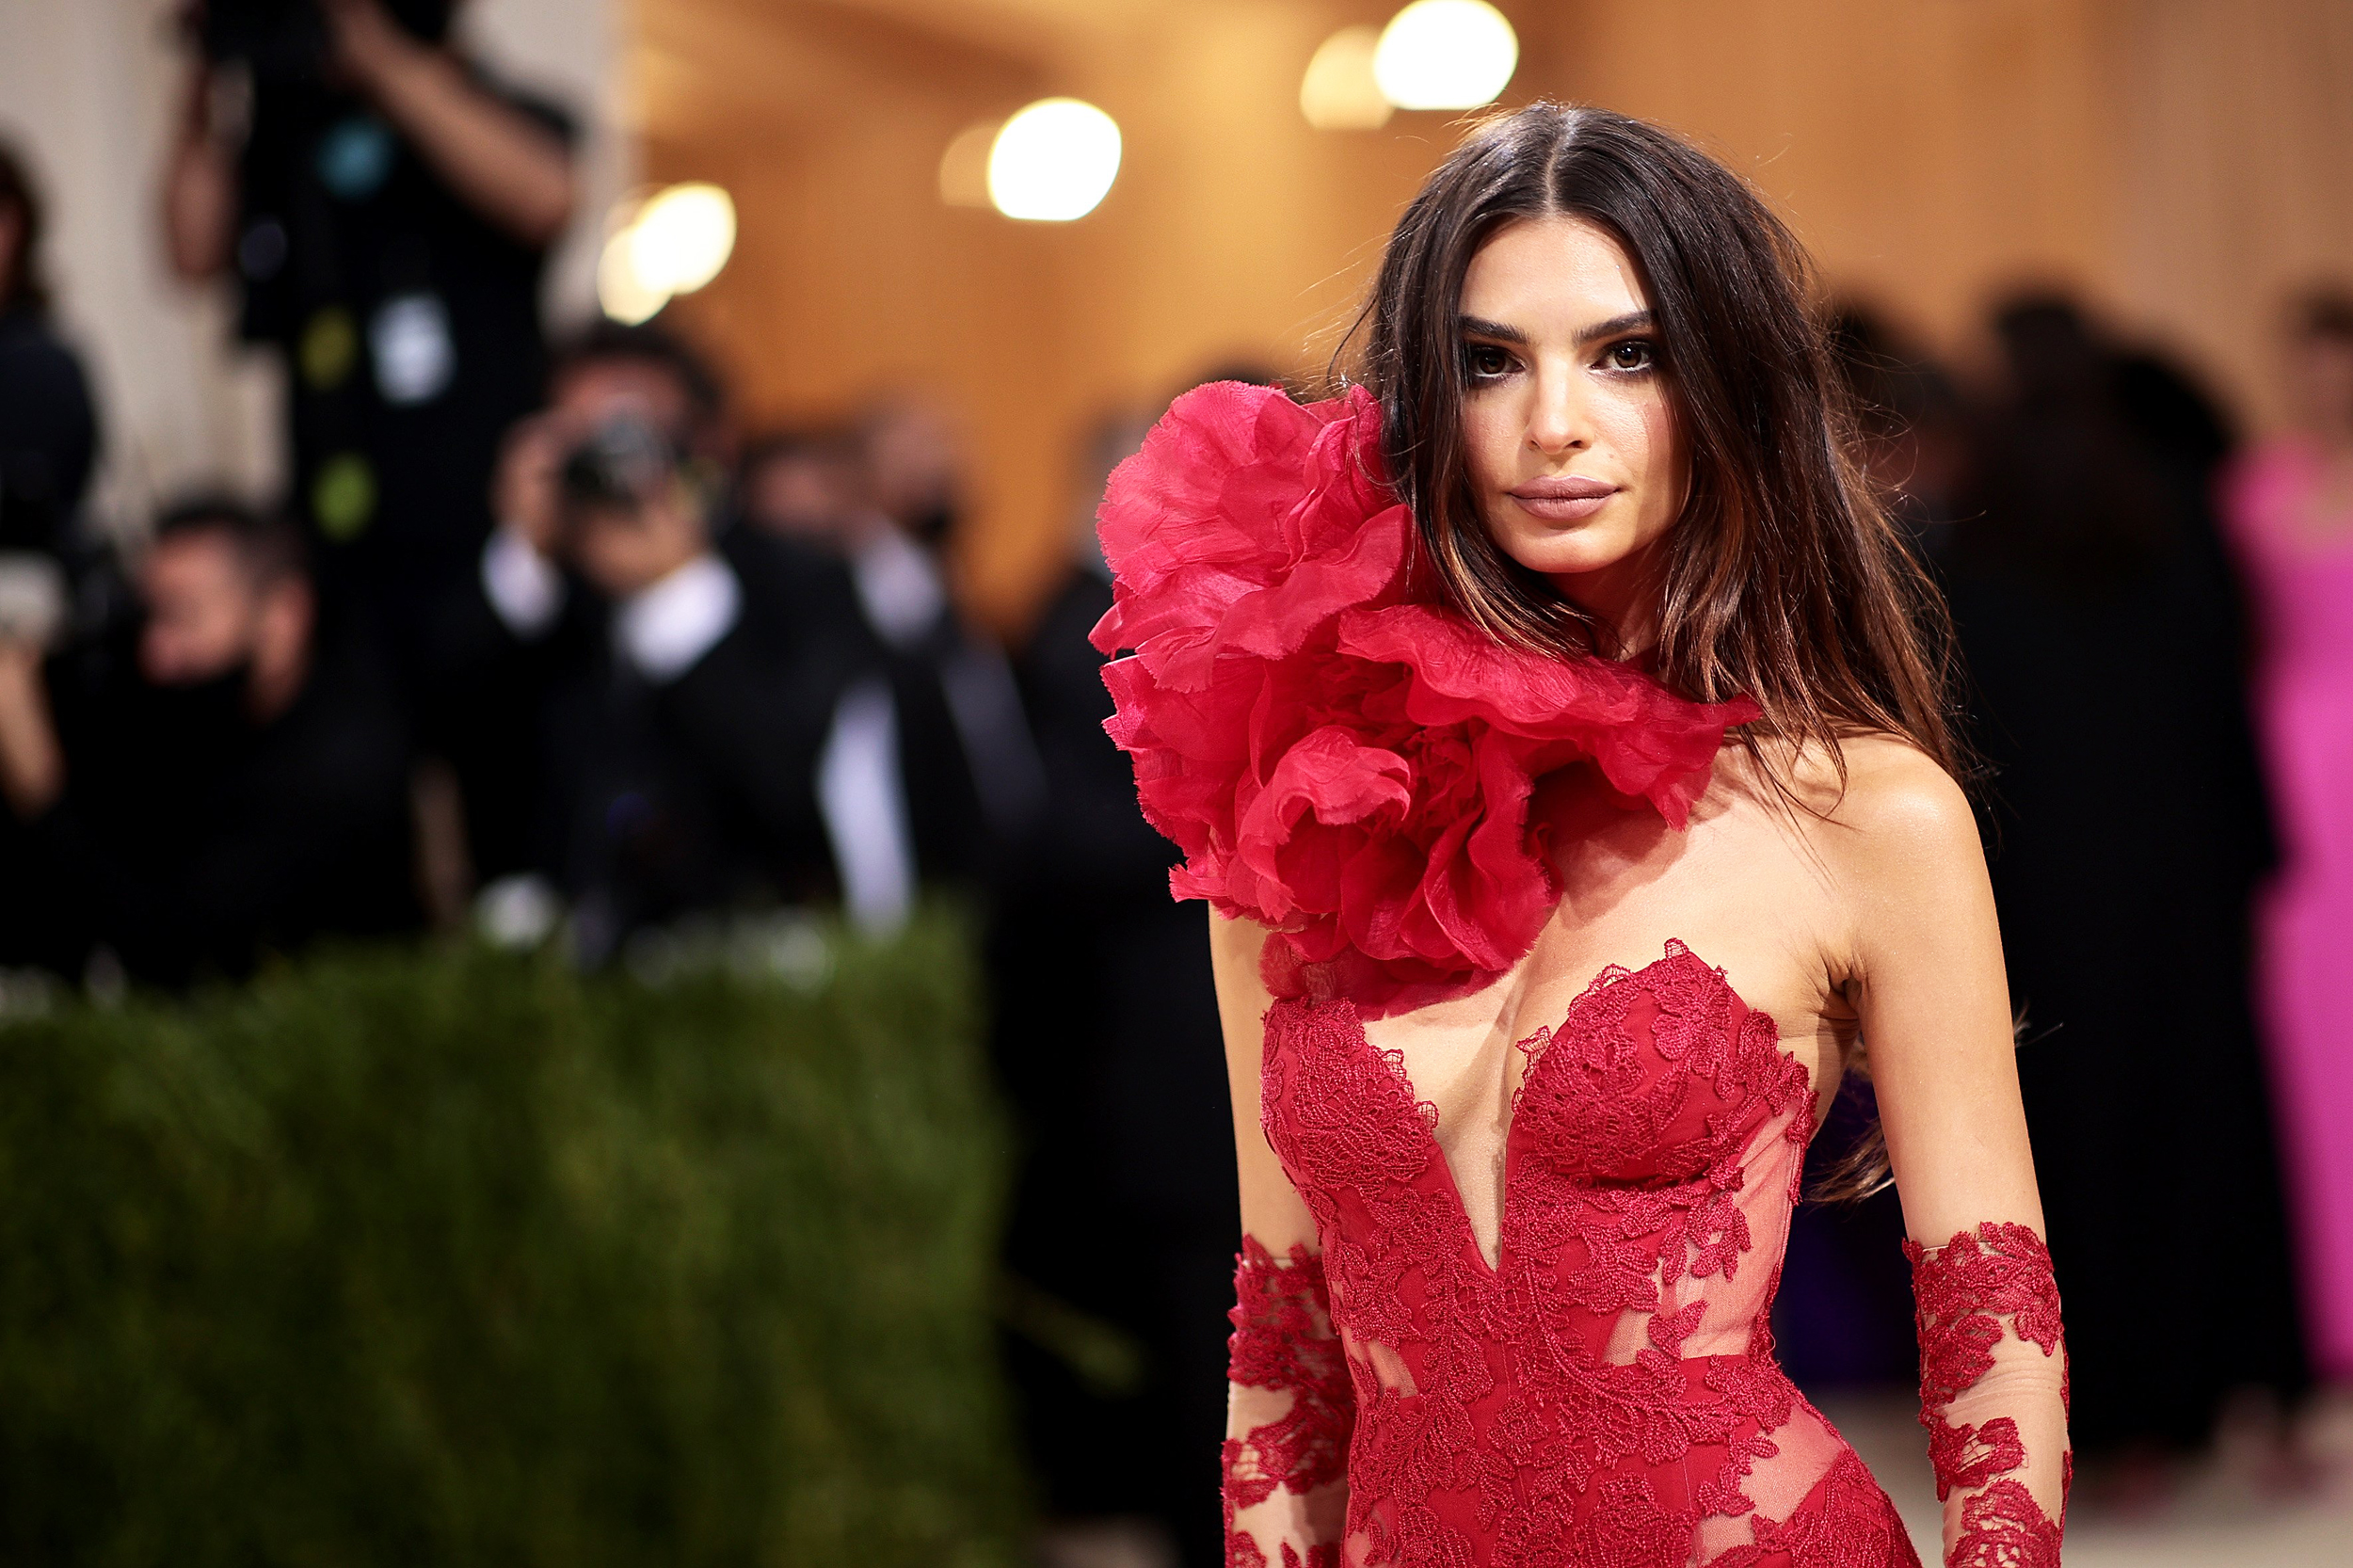 Emily Ratajkowski accuses Robin Thicke of groping her on 'Blurred Lines' set